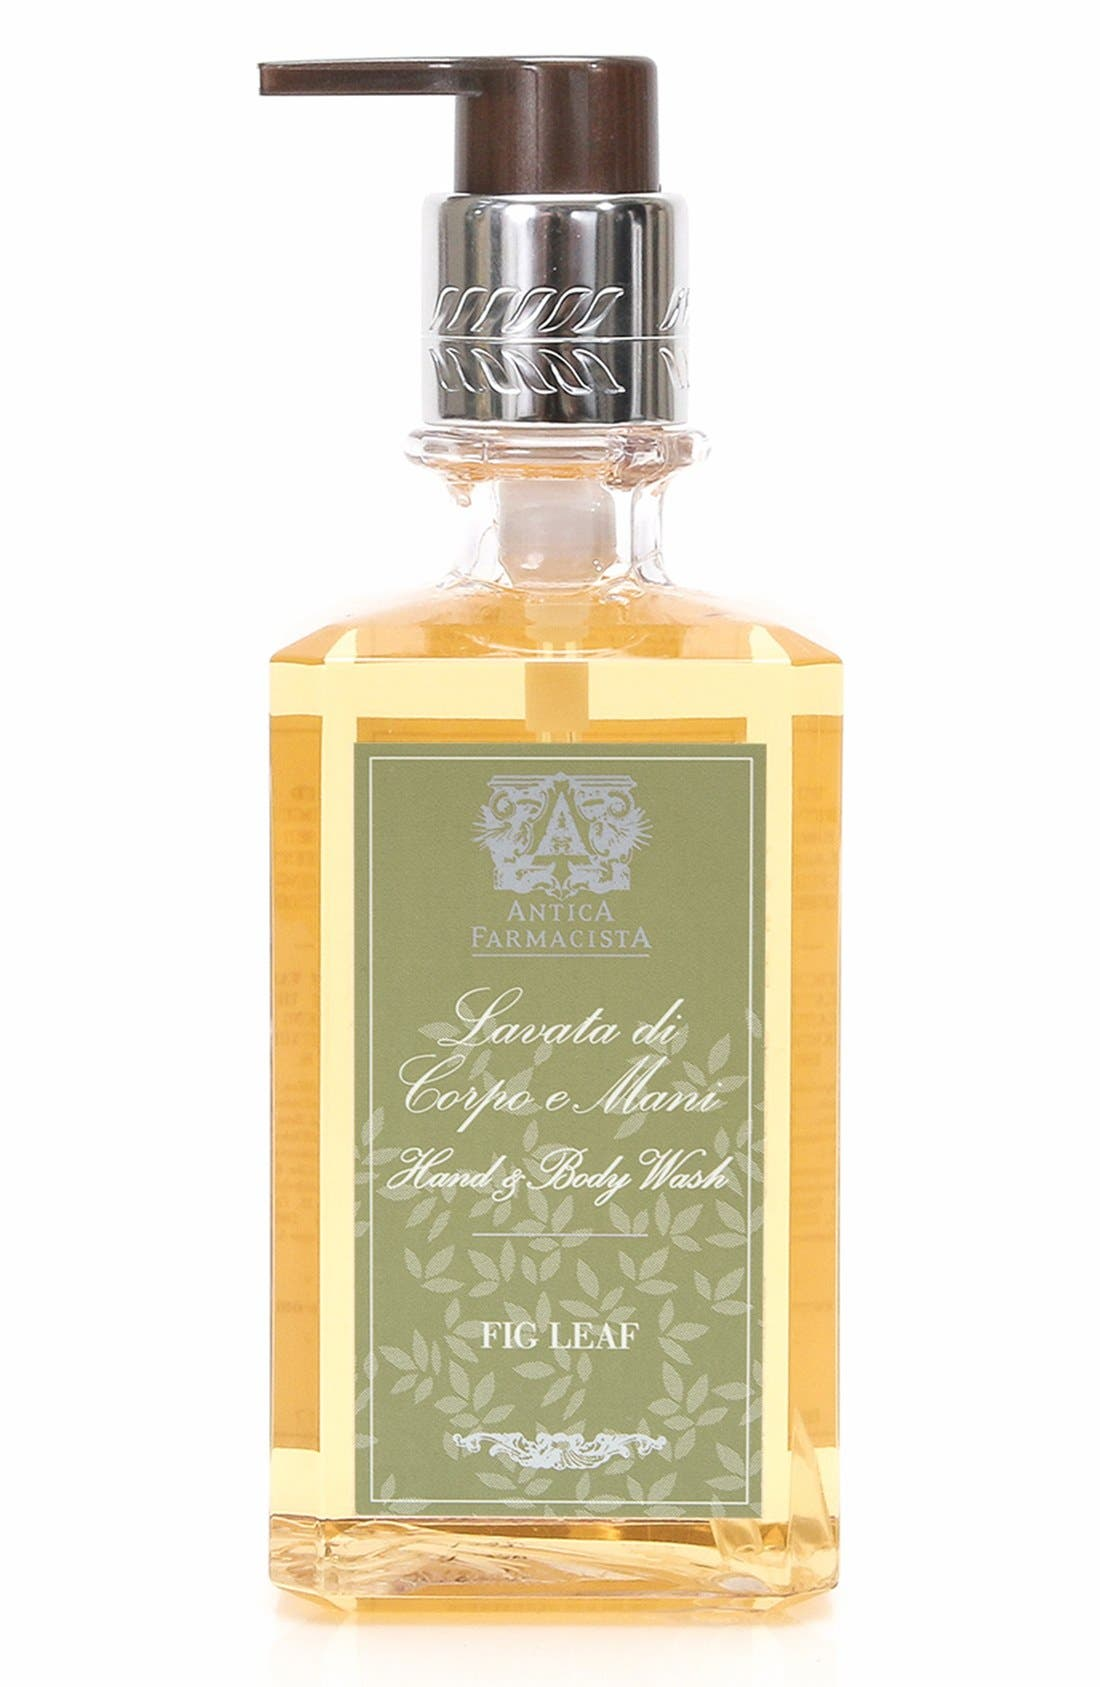 Antica Farmacista 'Fig Leaf' Hand & Body Wash